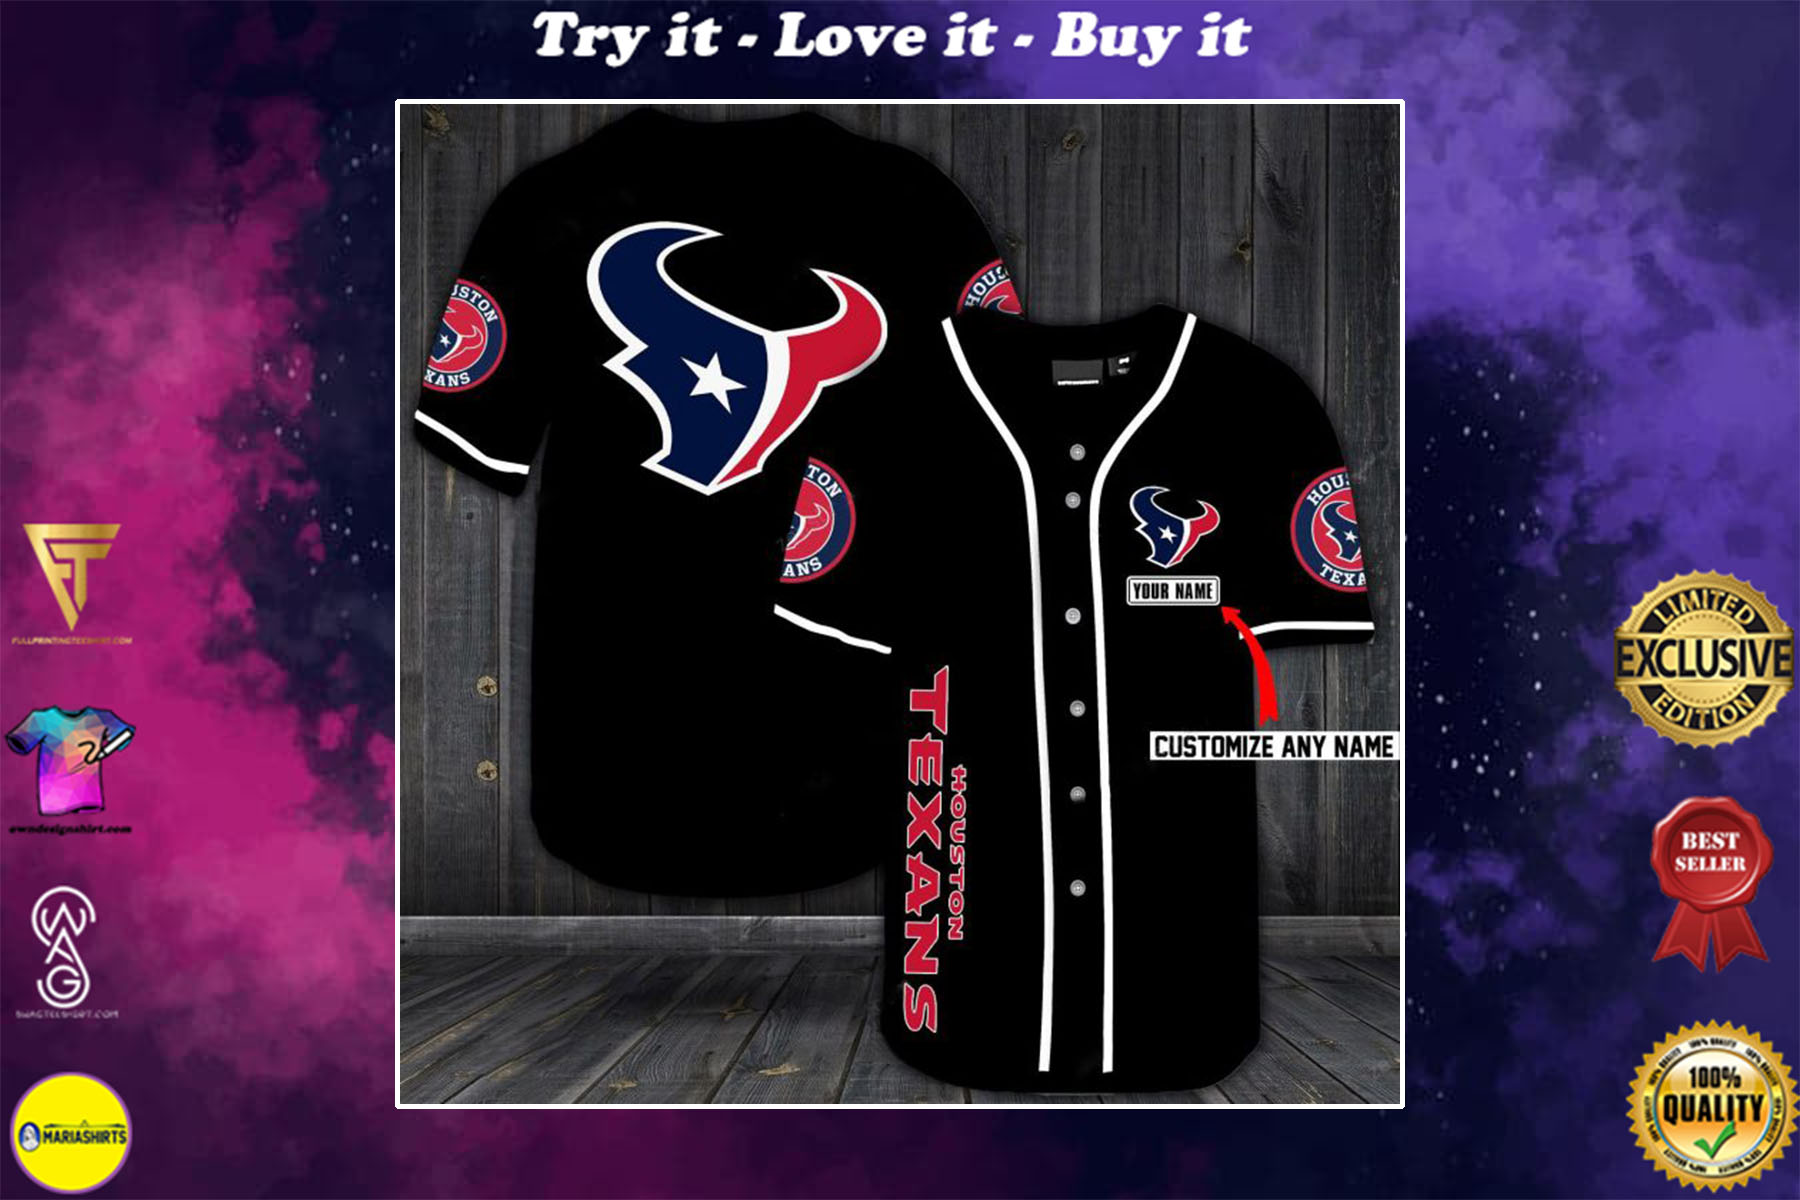 [special edition] custom name jersey houston texans shirt - maria